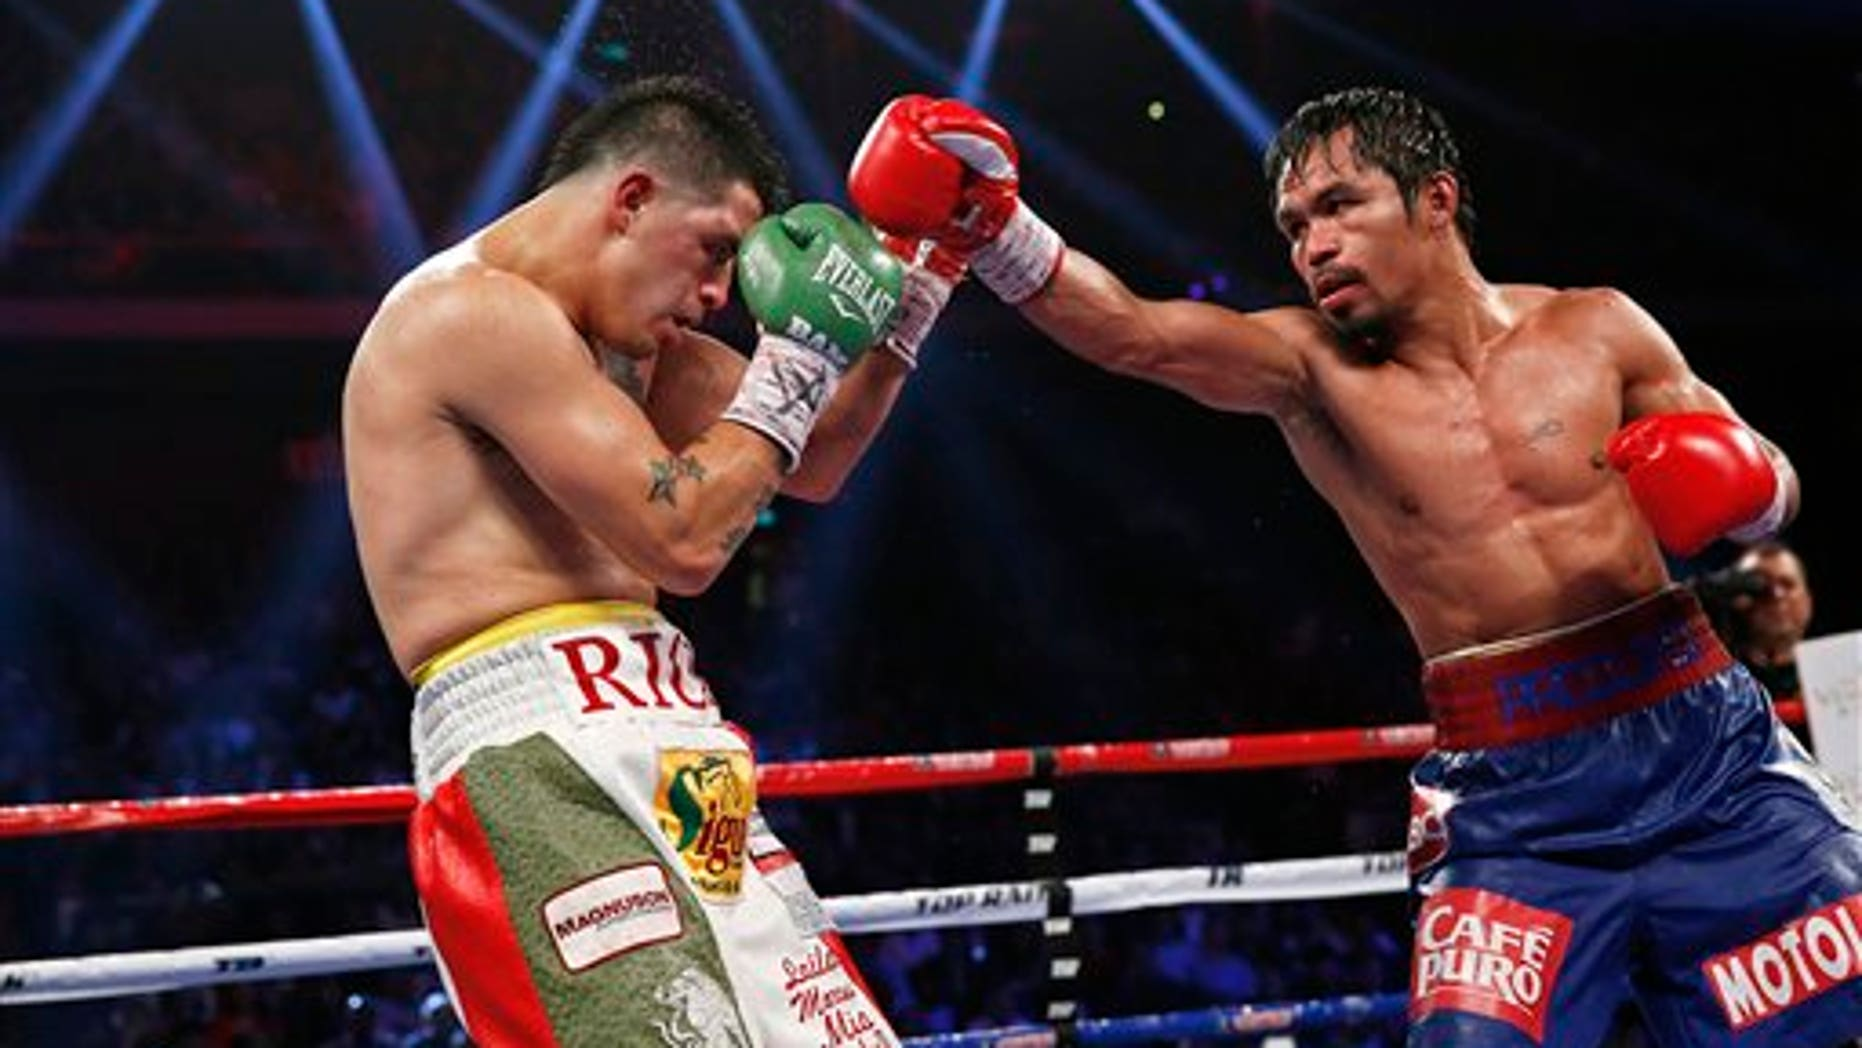 Manny Pacquiao, from the Philippines, right, punches Brandon Rios of the United States during their WBO international welterweight title fight Sunday, Nov. 24, 2013, in Macau. Pacquiao defeated Rios by unanimous decision on Sunday to take the WBO international welterweight title and return to his accustomed winning ways after successive defeats.   (AP Photo/ Vincent Yu)